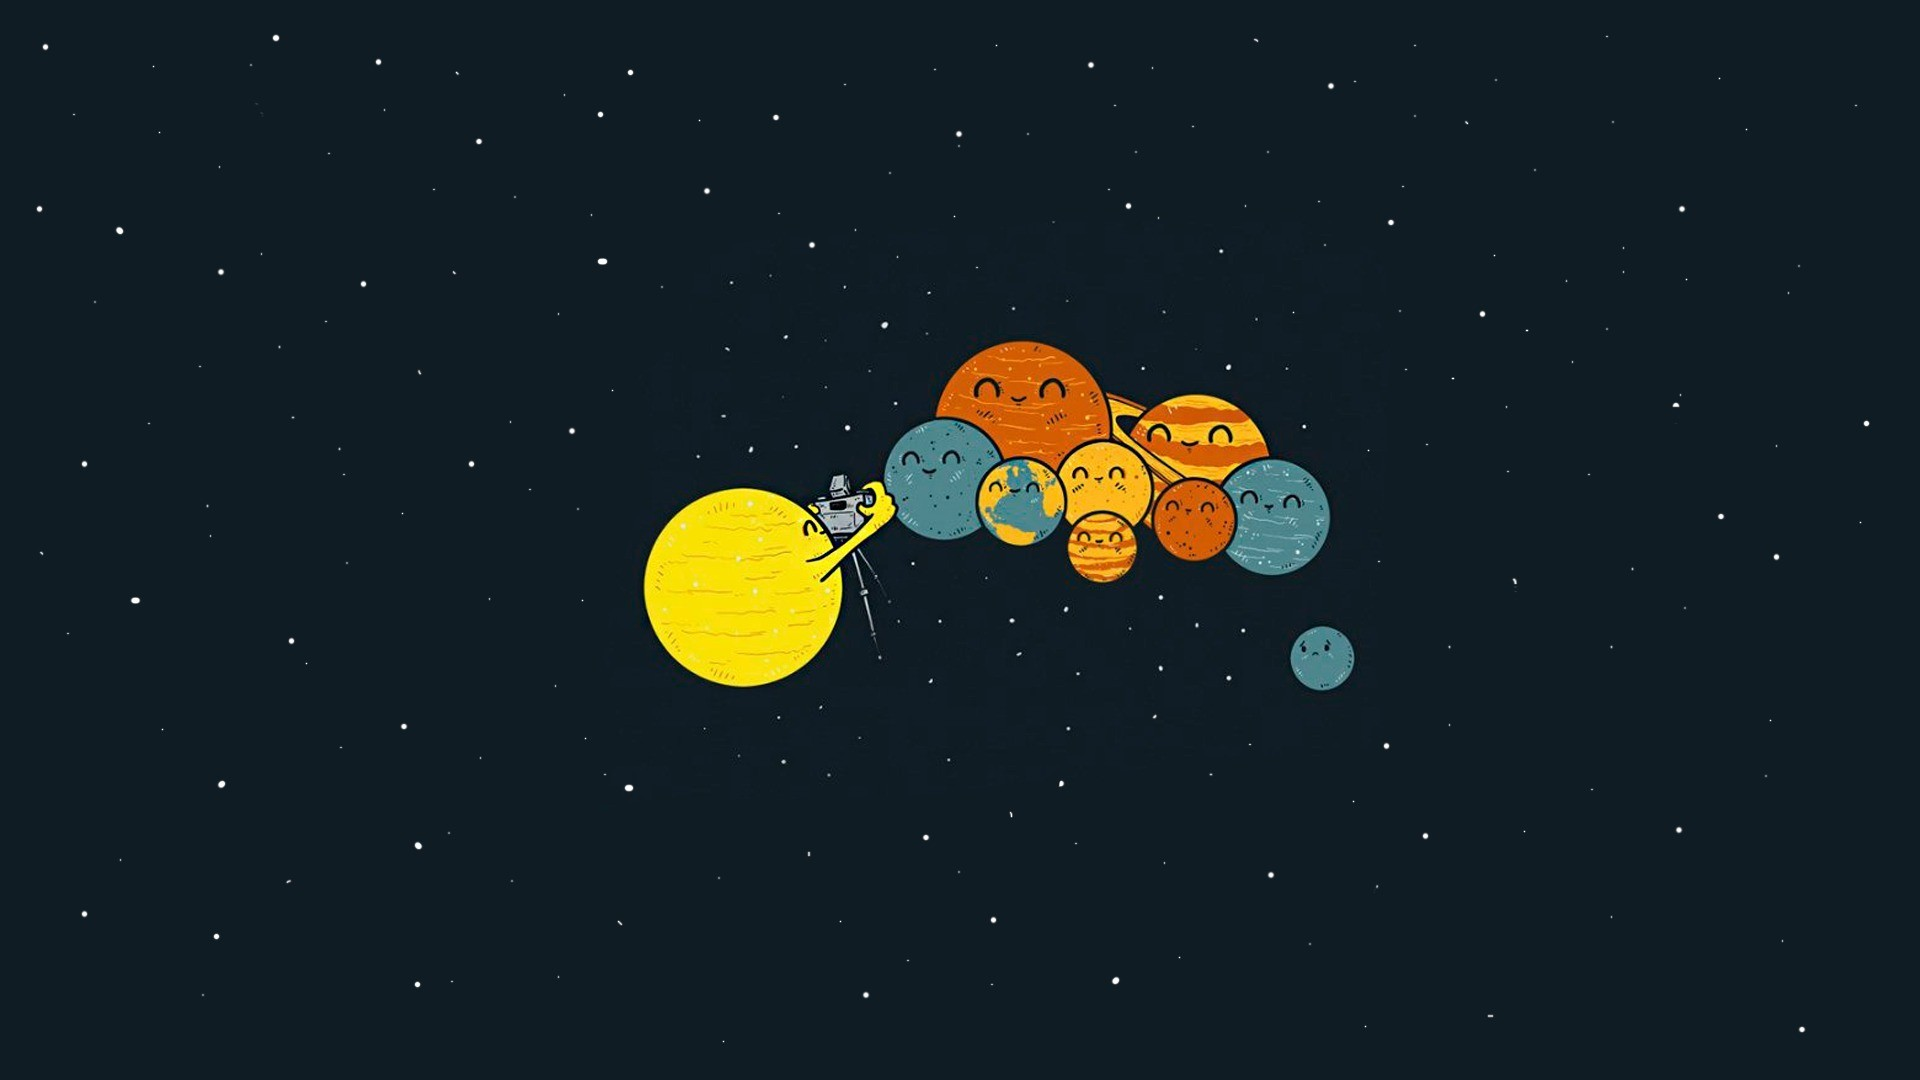 solar system wallpaper planets - photo #35